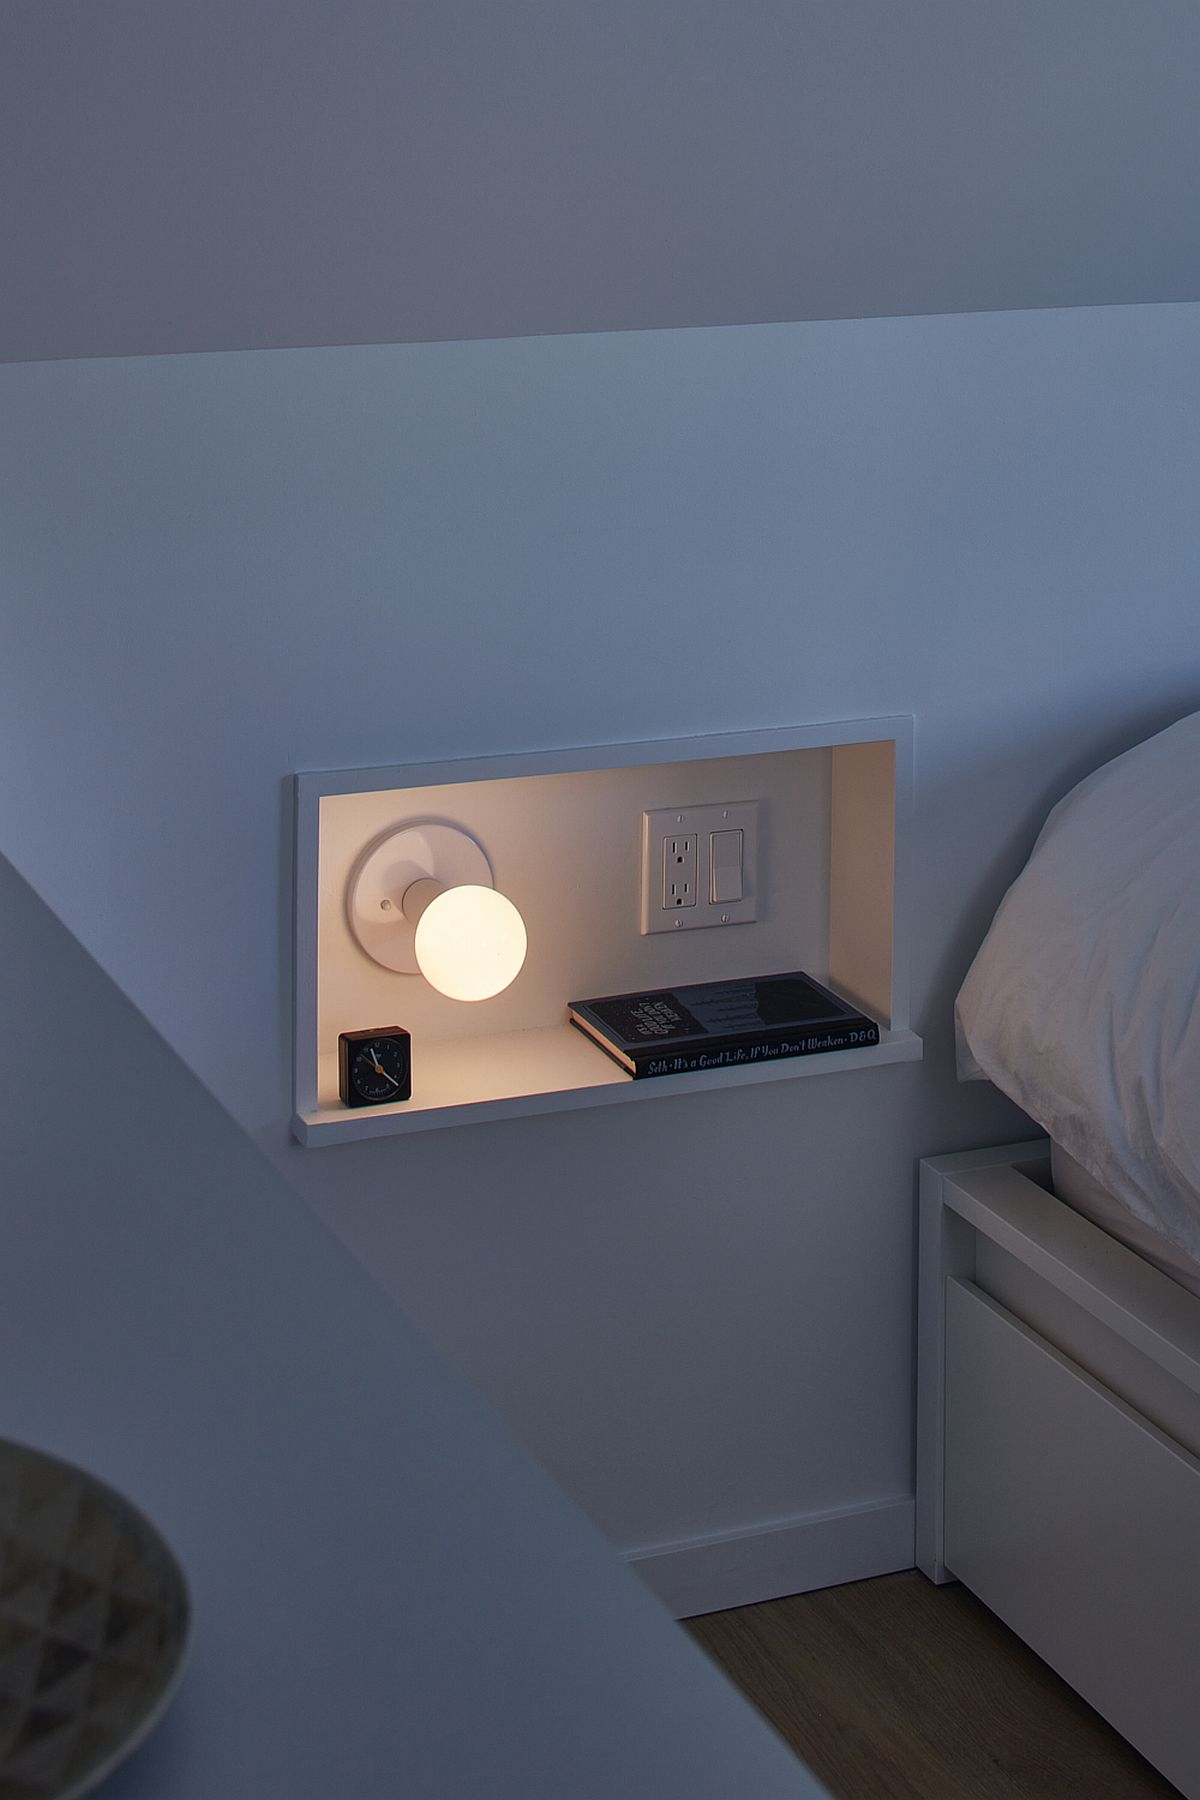 Small niche next to the bed inside the modern bedroom with space for a book and bed lamp